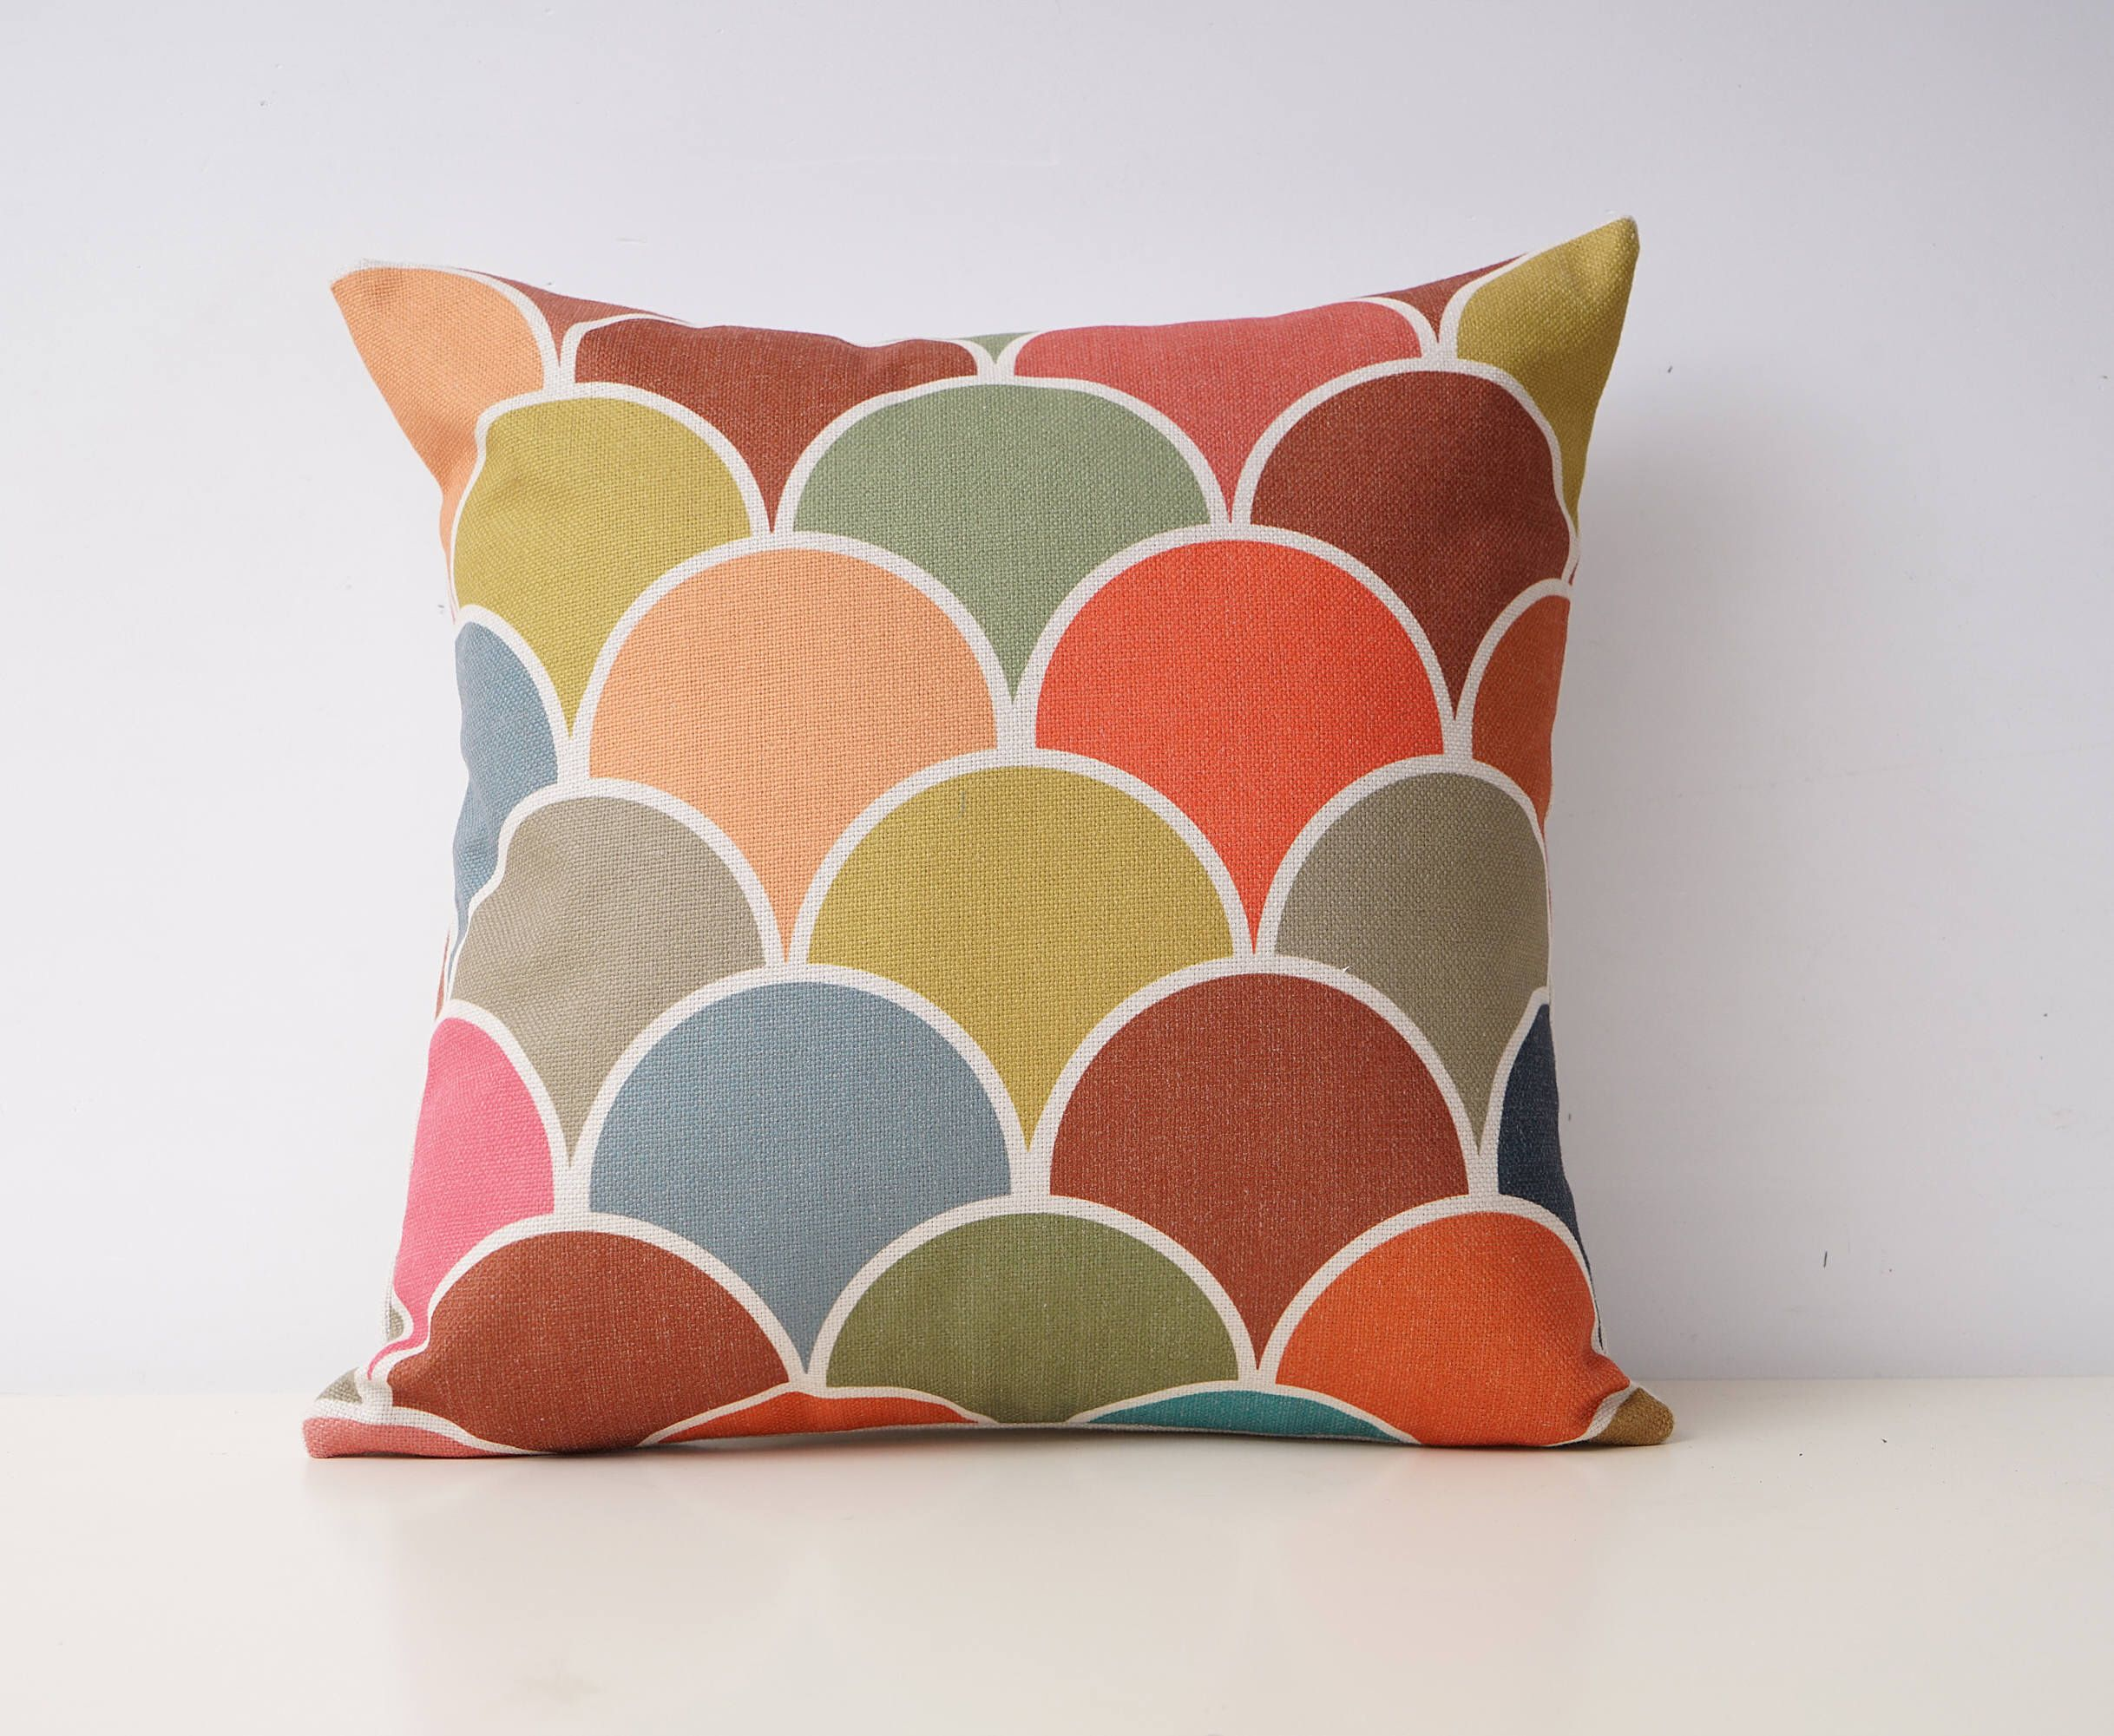 Seamless Decorative Pillow Cover Mermaid Scales Throw Pillow Covers Linen Colorful Cushion Case Sof Decorative Pillow Covers Throw Pillows Colourful Cushions